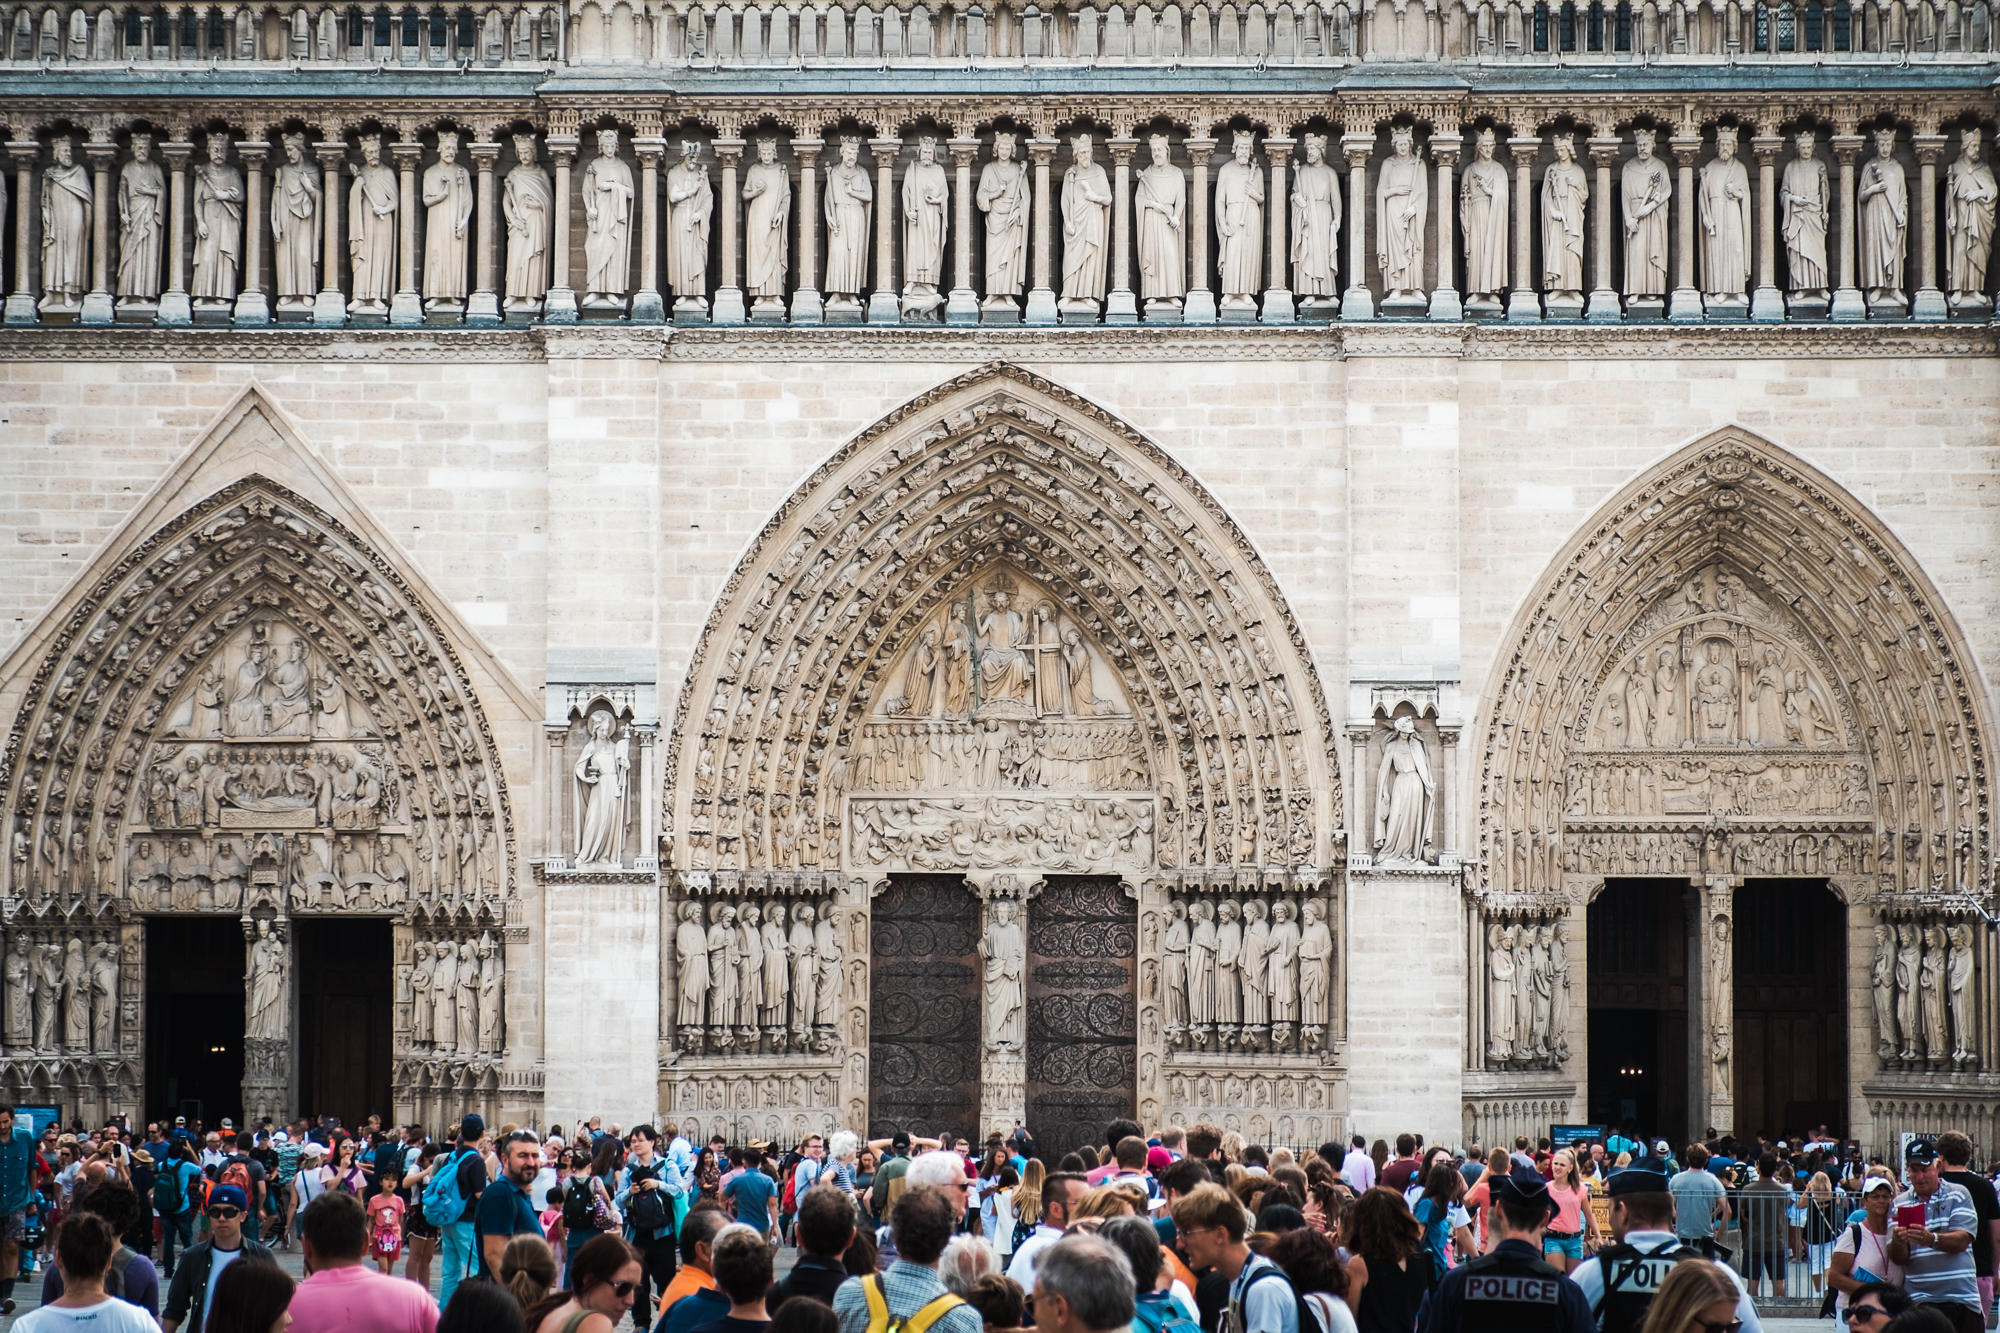 Entrance to Notre-Dame | Fujifilm XT2 | XF18-55mm | 55mm | 1/600 second | f/4 | ISO200